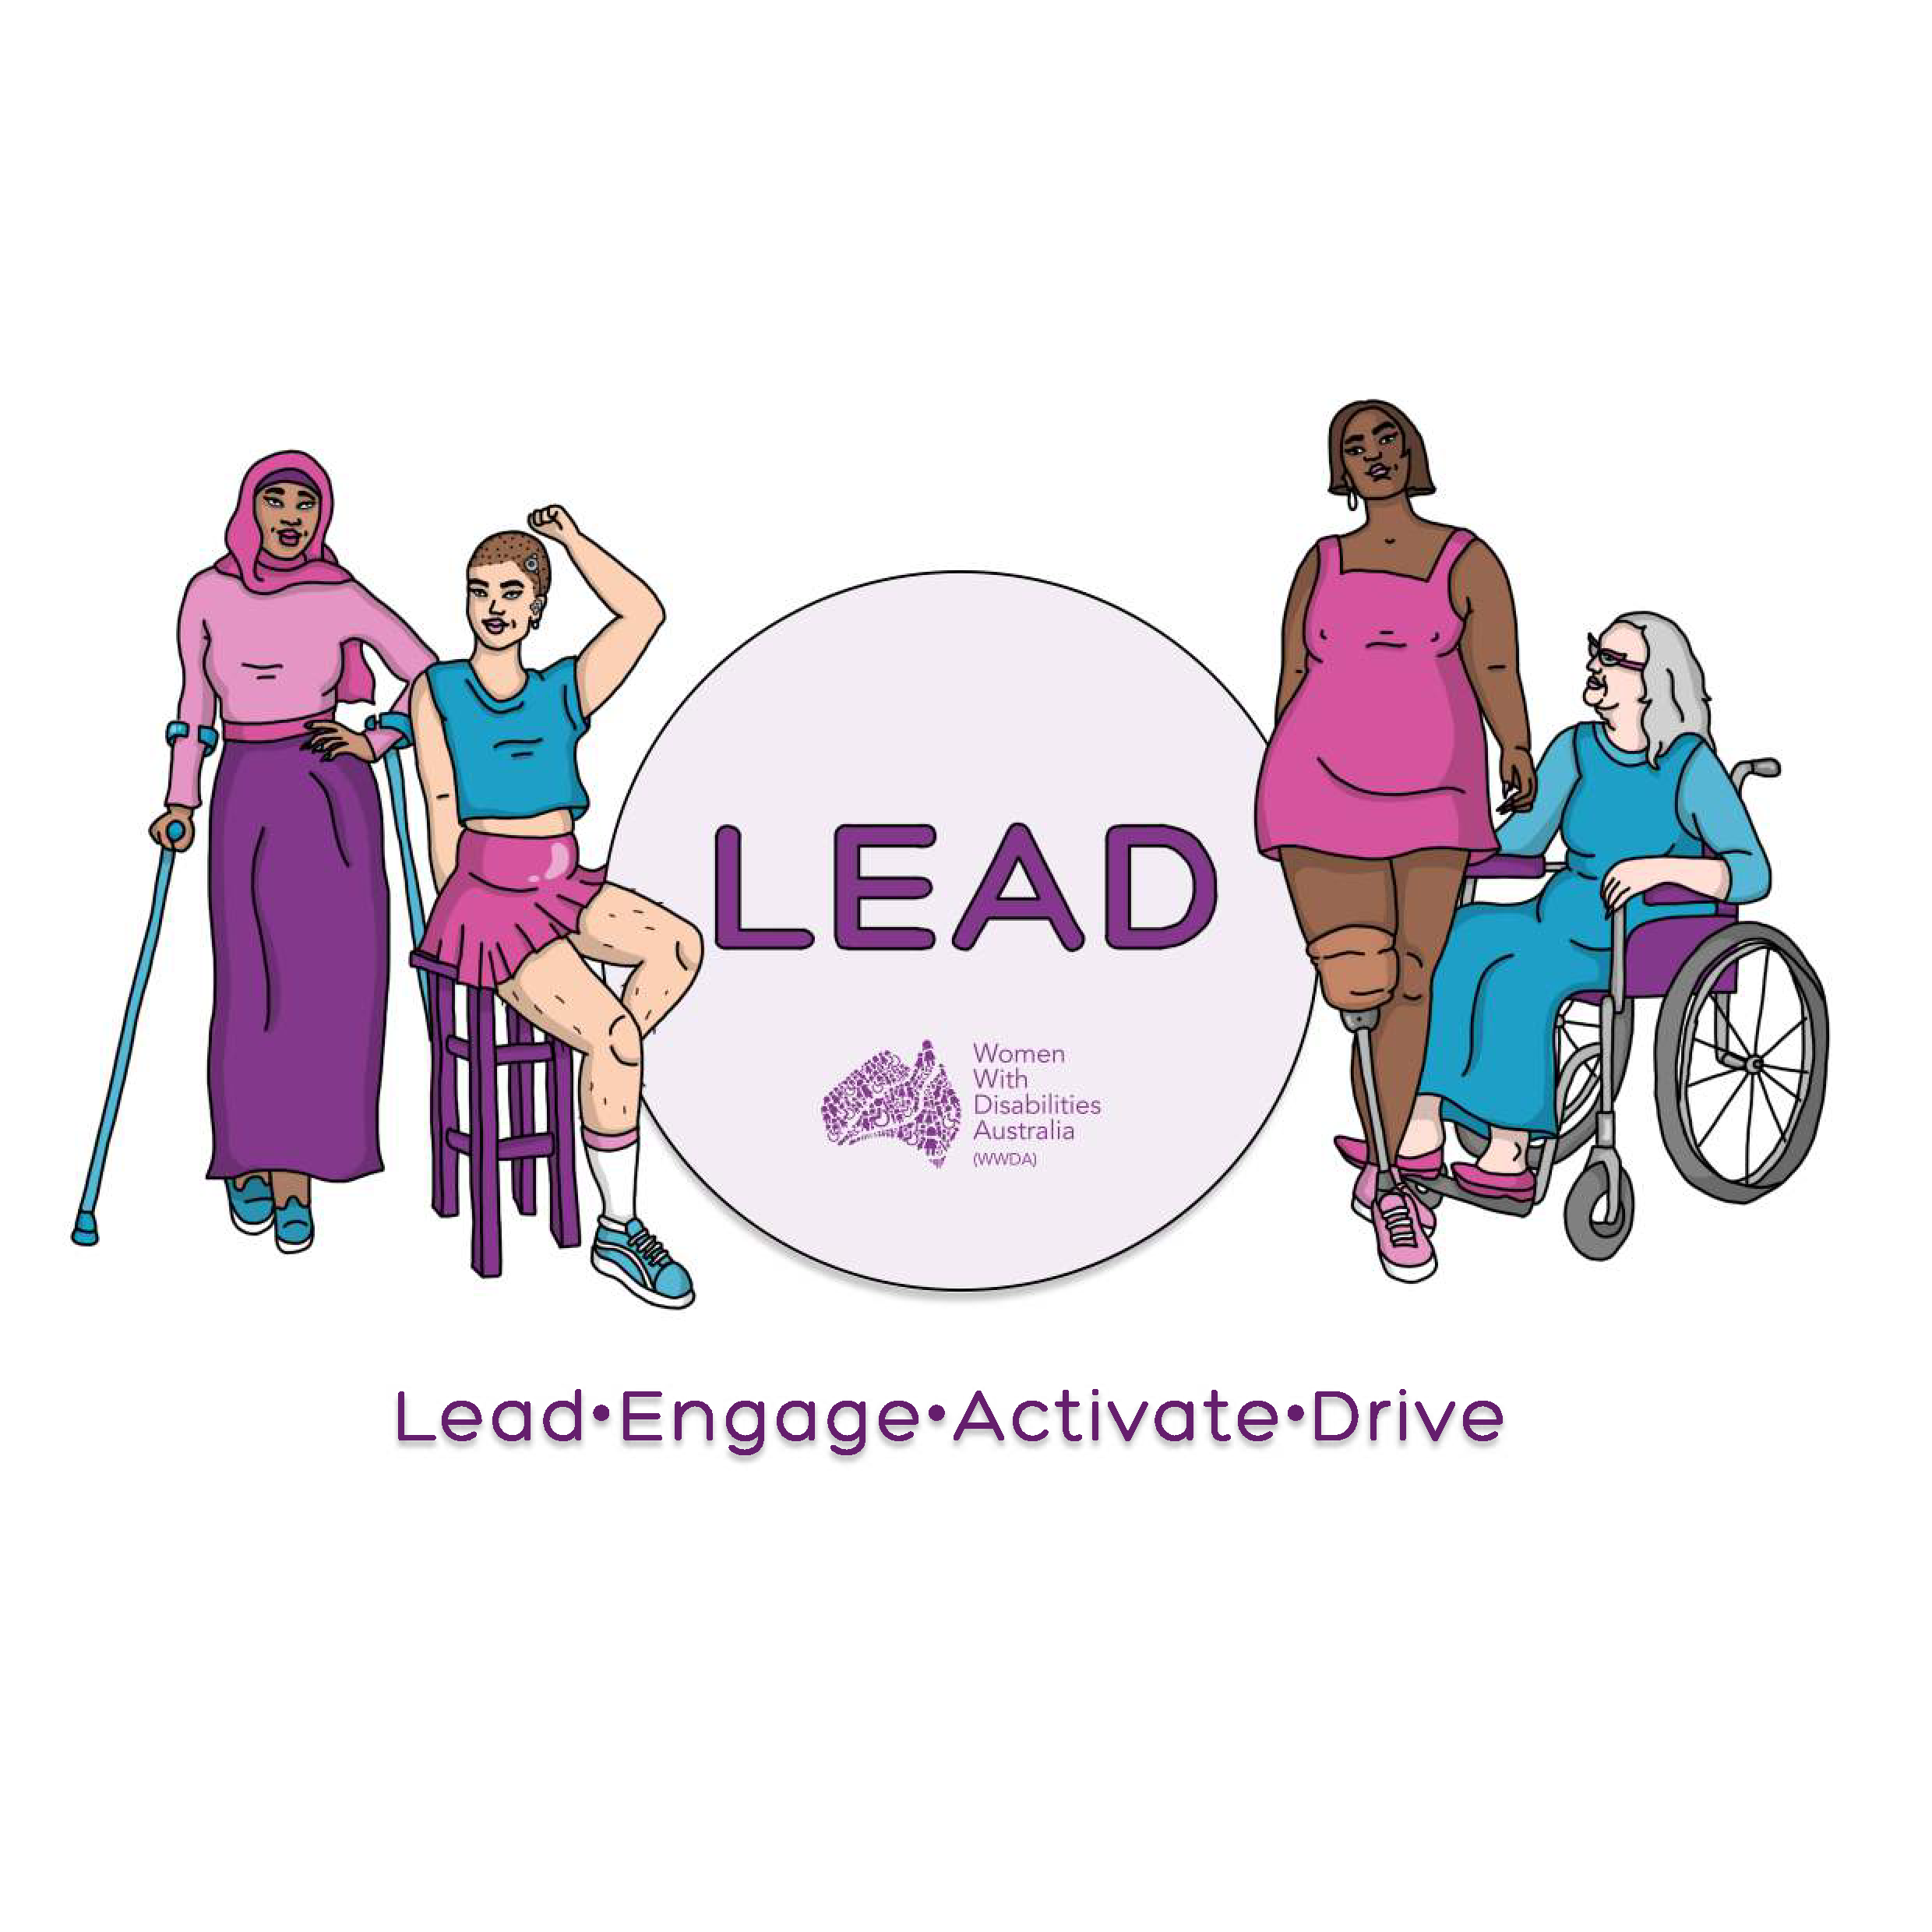 White background with an illustration of four women representing diversity and disability. In the middle in a purple circle reads LEAD, Lead, Engage, Activate and drive.